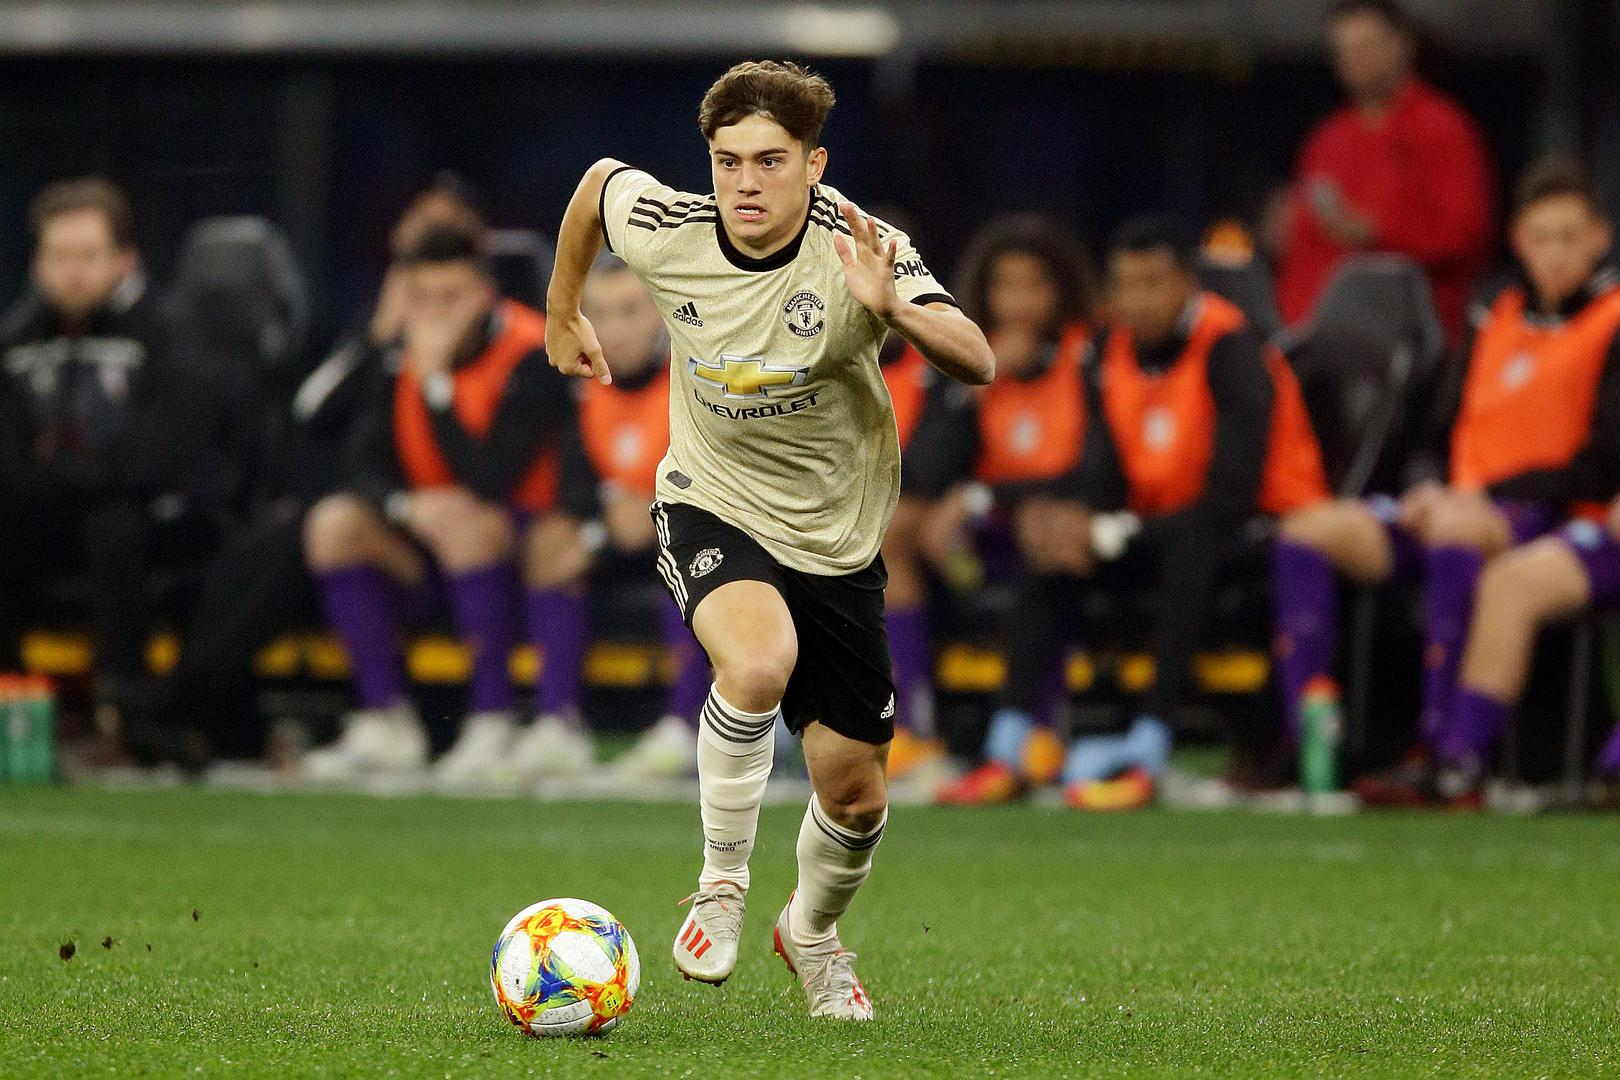 Daniel James races forward with the ball against Perth Glory